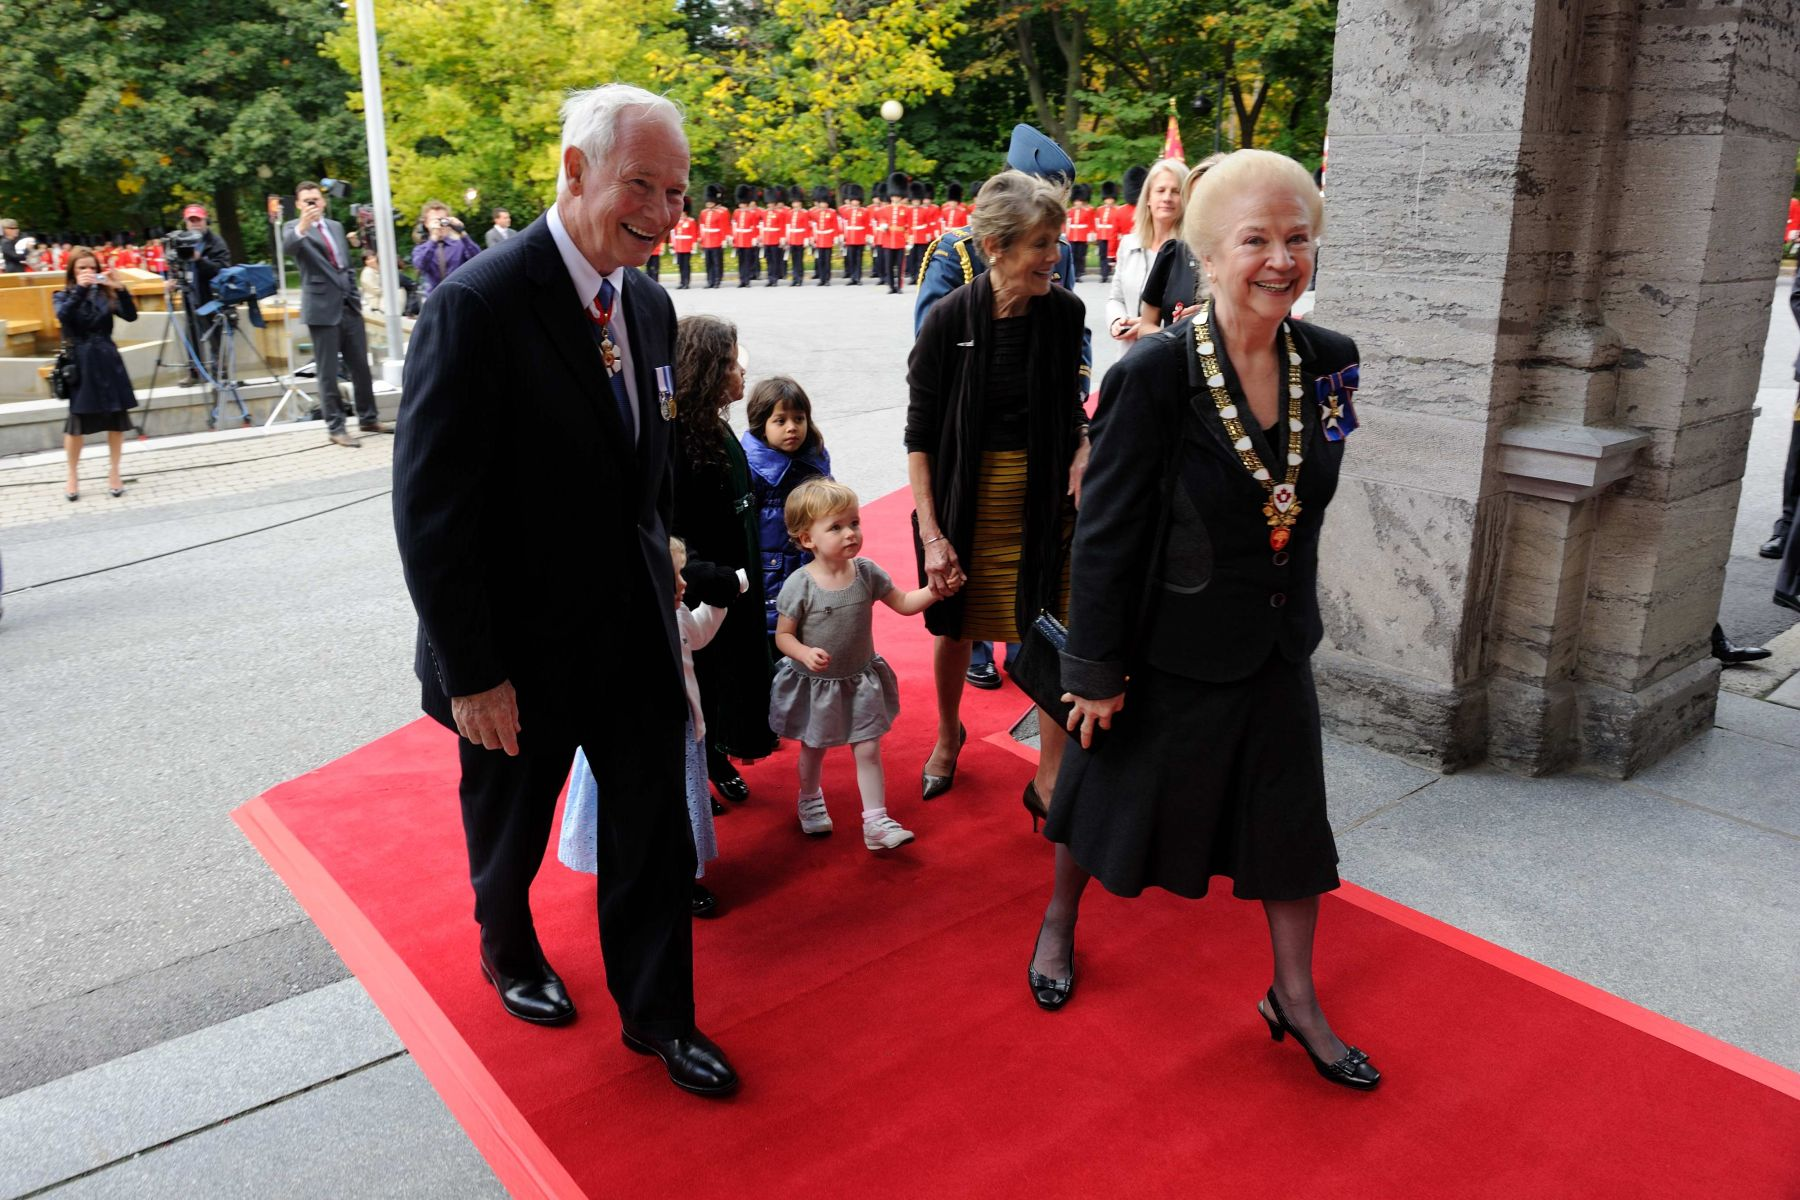 Their Excellencies then entered Rideau Hall accompanied by Mrs. Sheila-Marie Cook, Secretary to the Governor General, and their family.